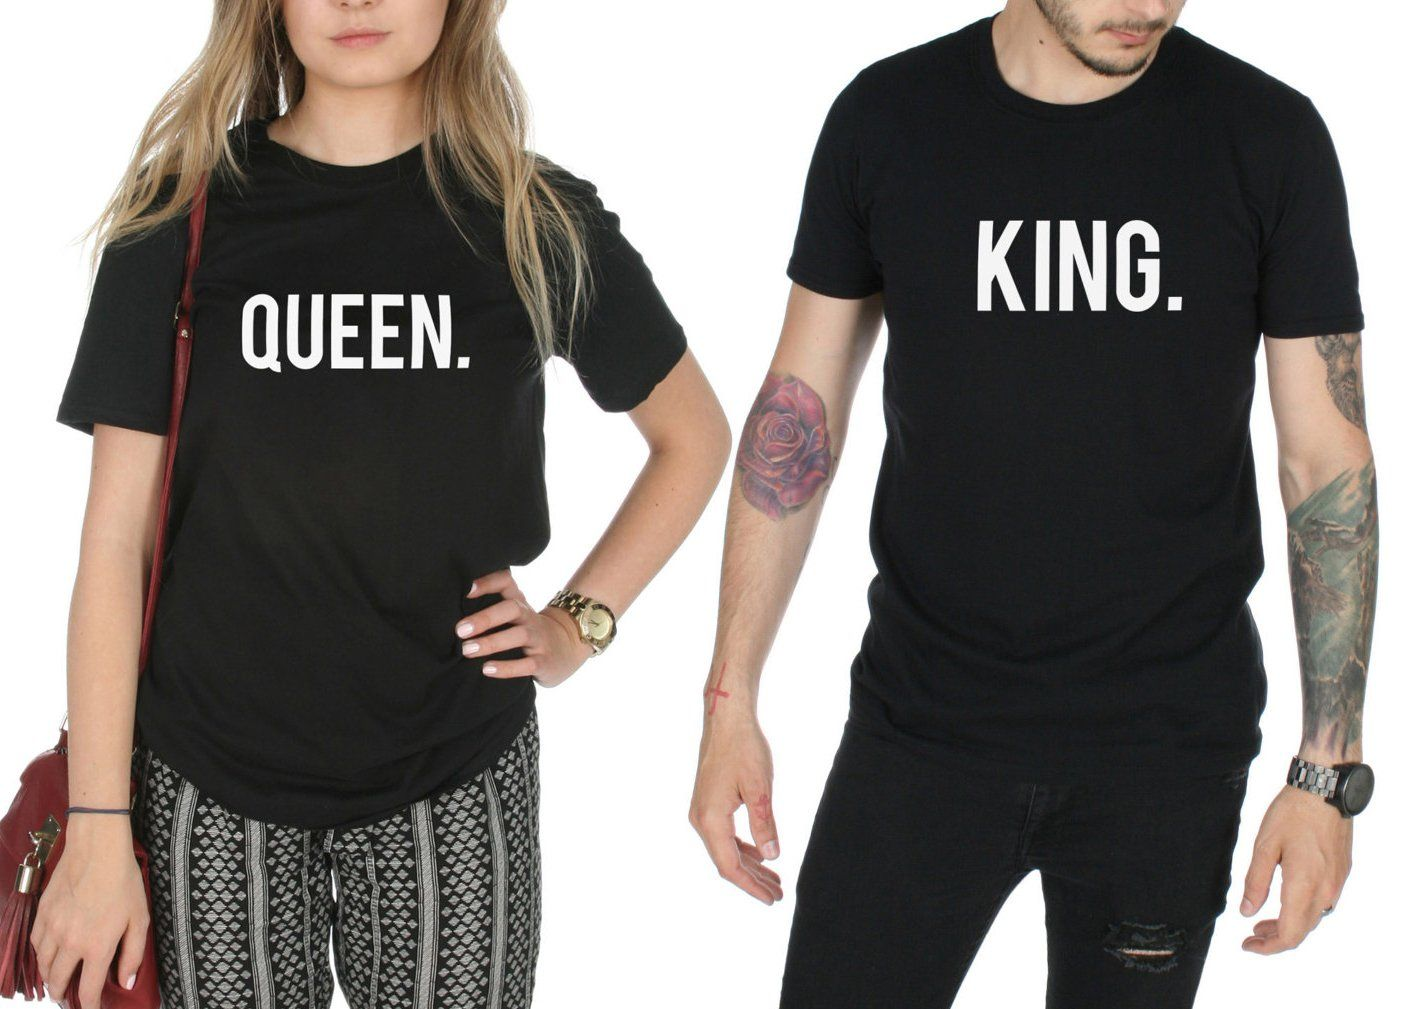 King And Queen Matching T-shirt Tops Gift Couple For Valentine's Day